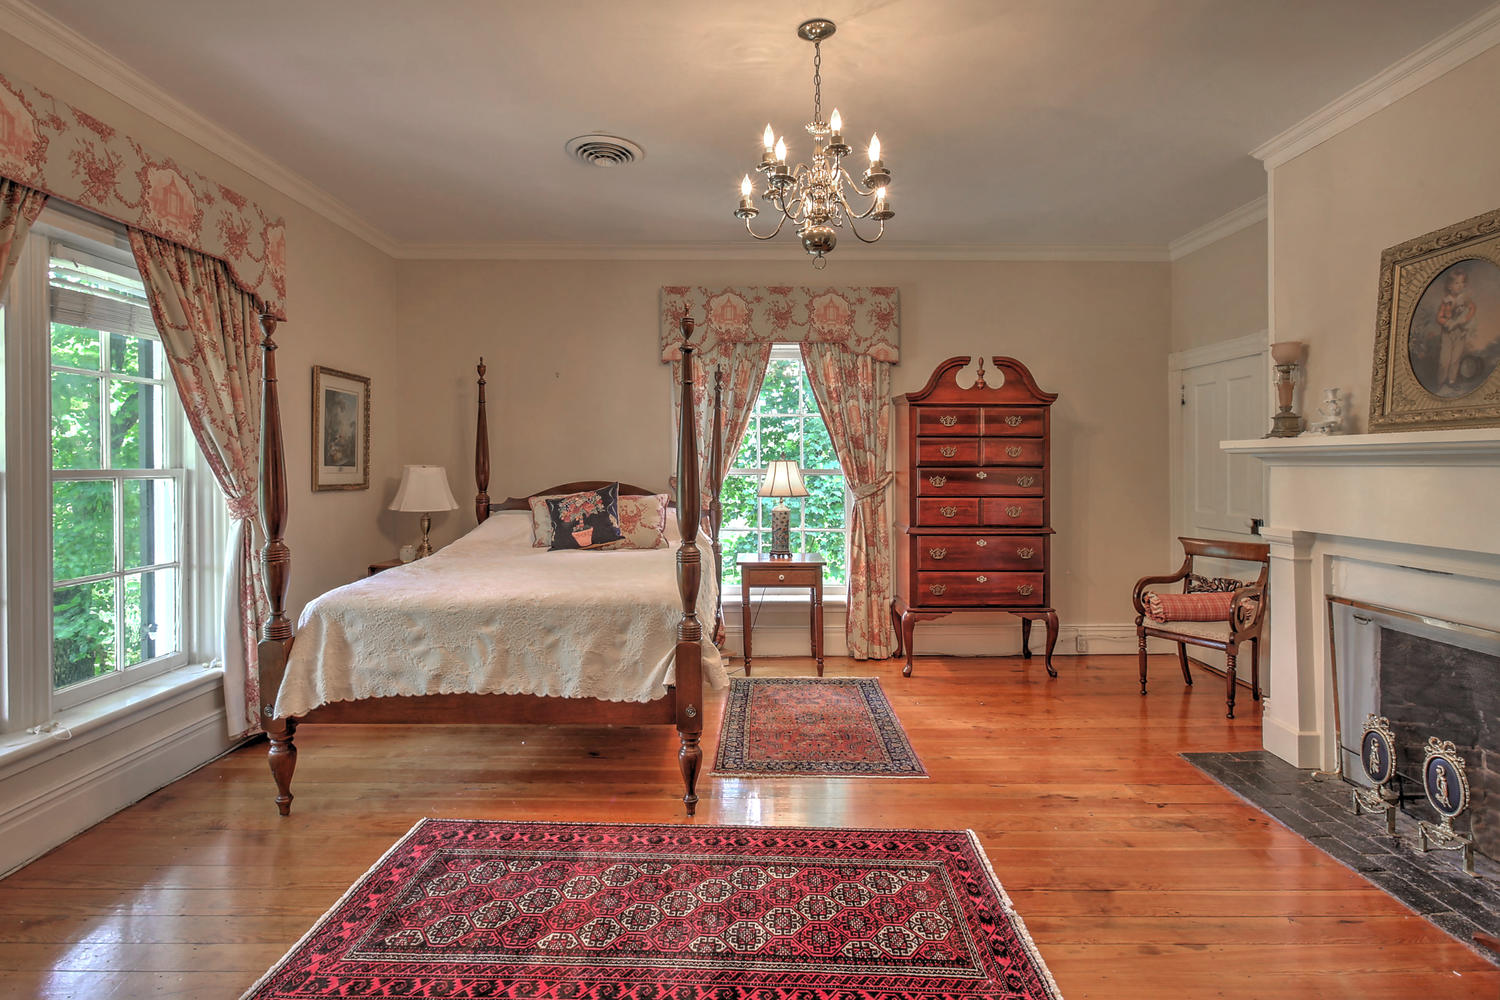 A Charming Bedroom